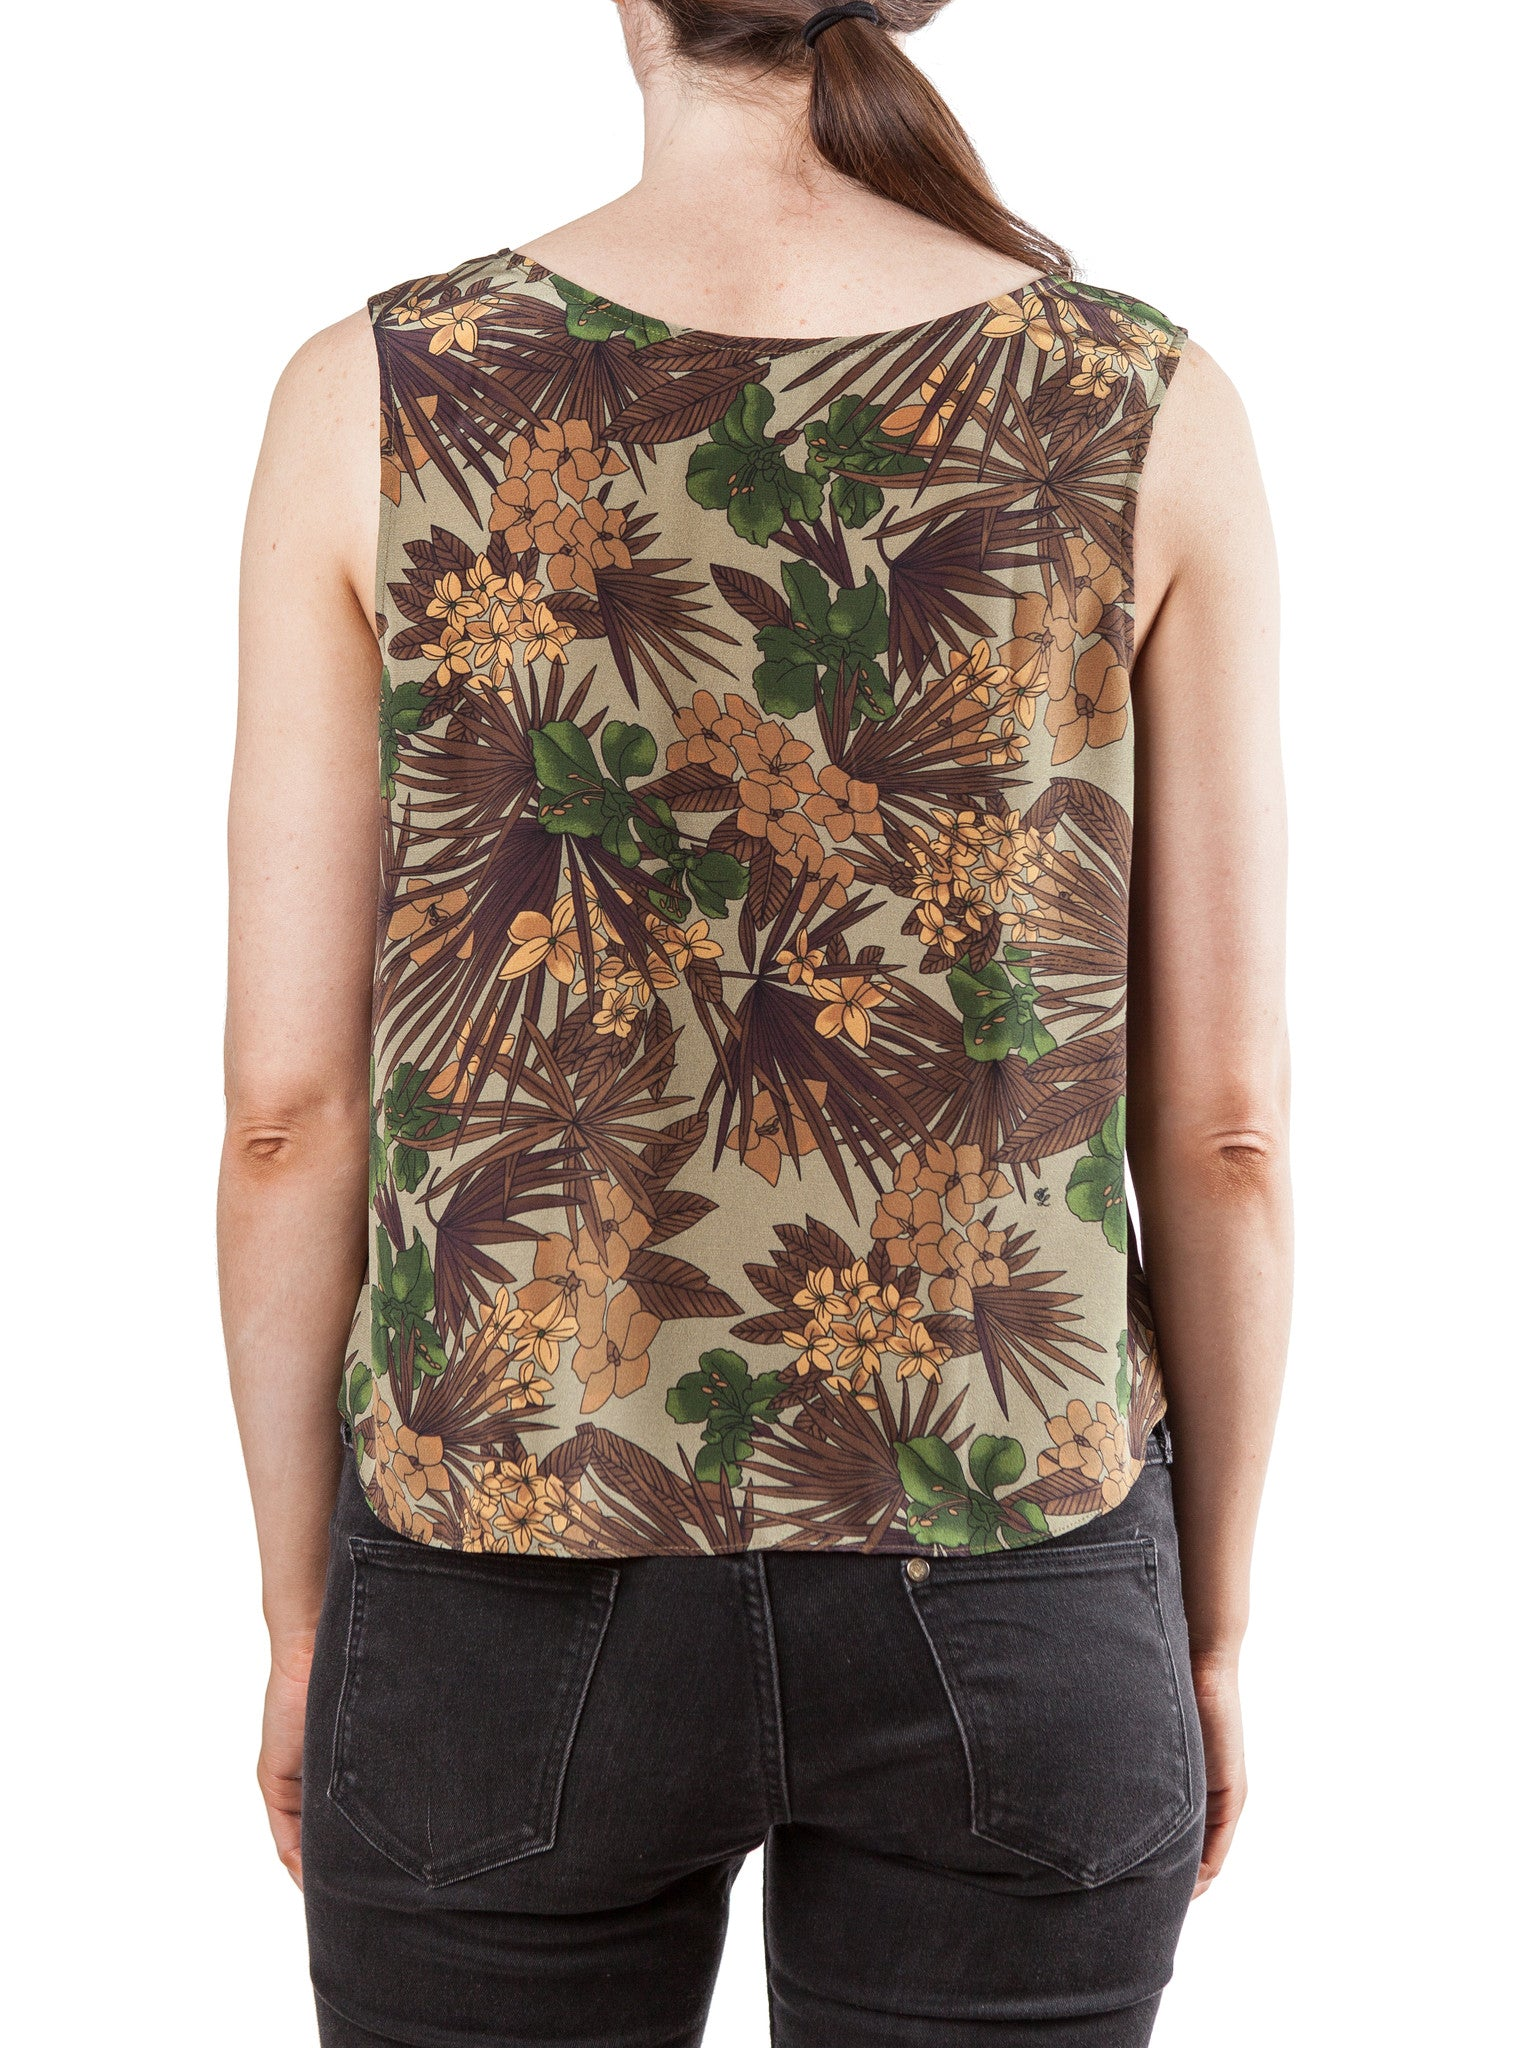 Printed tank top | Silk Crepe de Chine